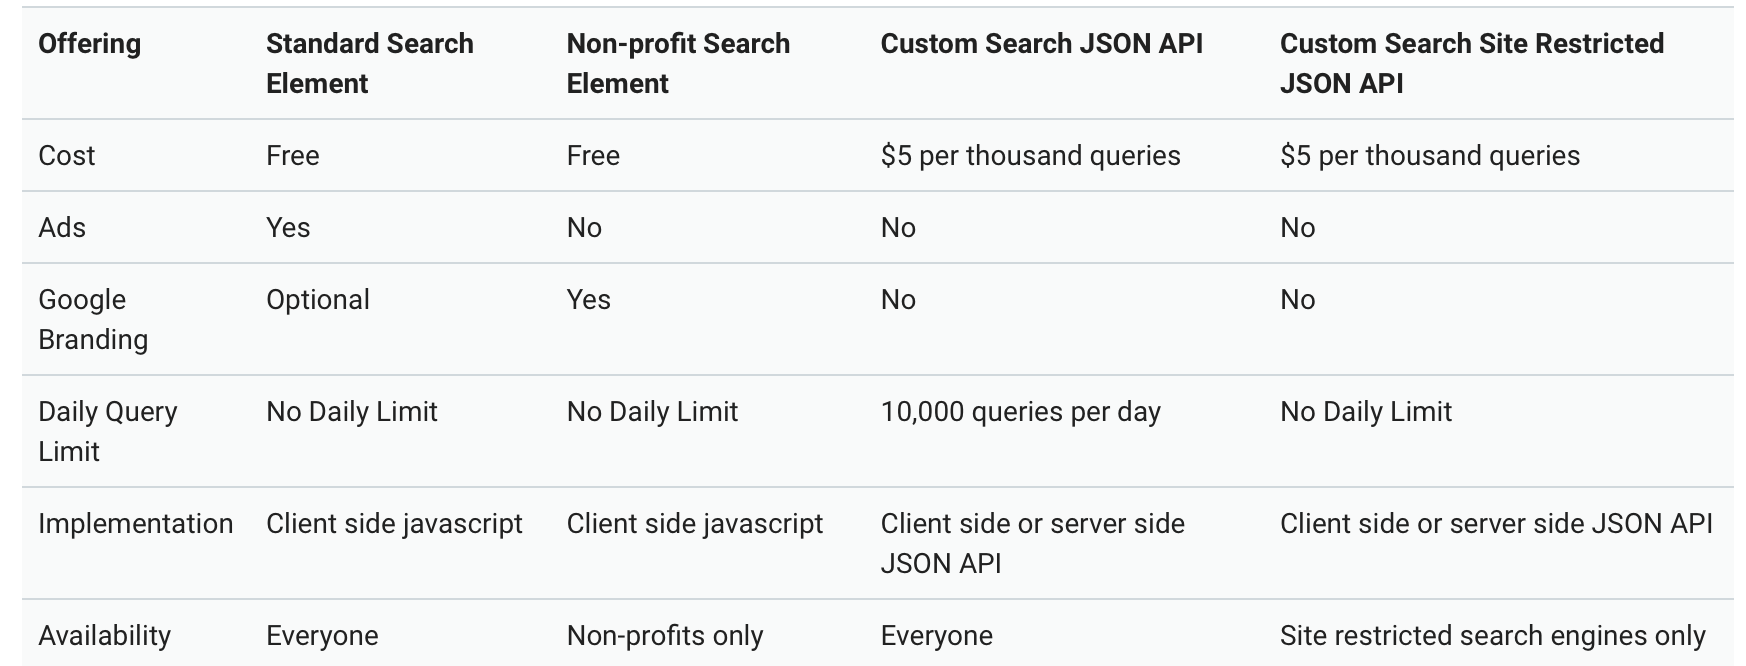 google custom search pricing